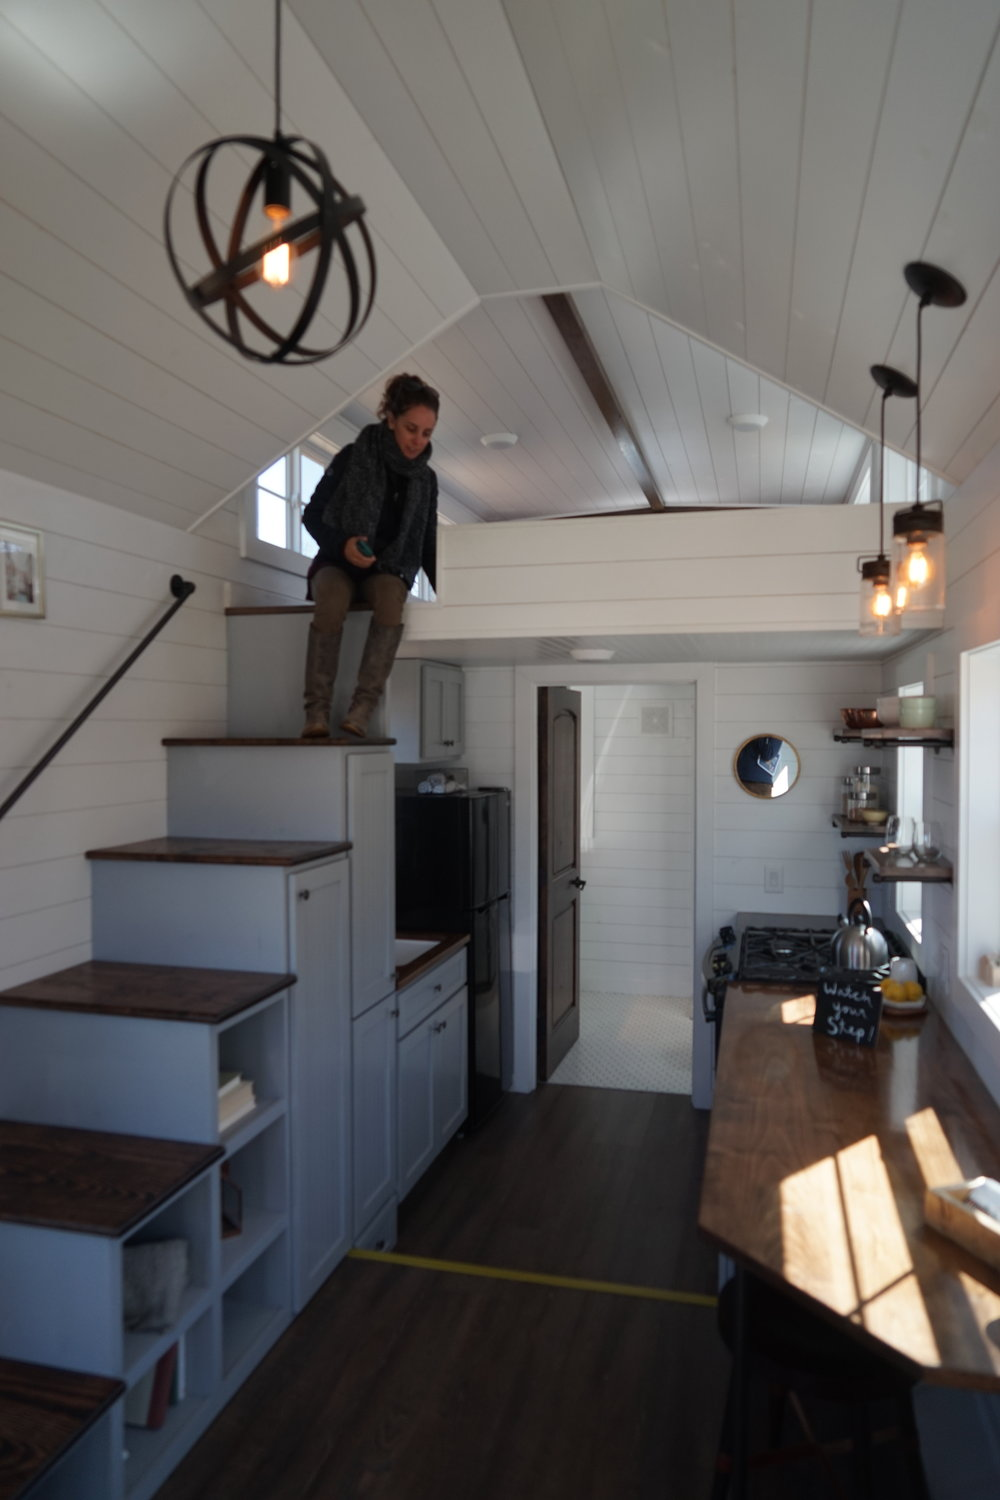 The inside of my fav tiny home by Mustard Seed